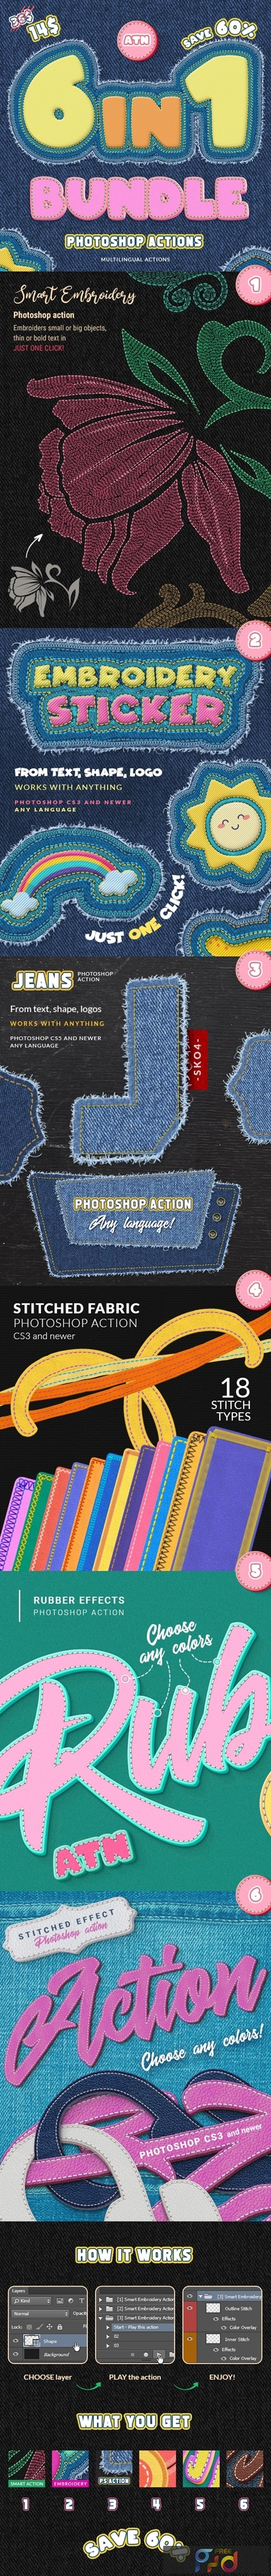 Stitch & Embroidery Actions Bundle 25972982 1